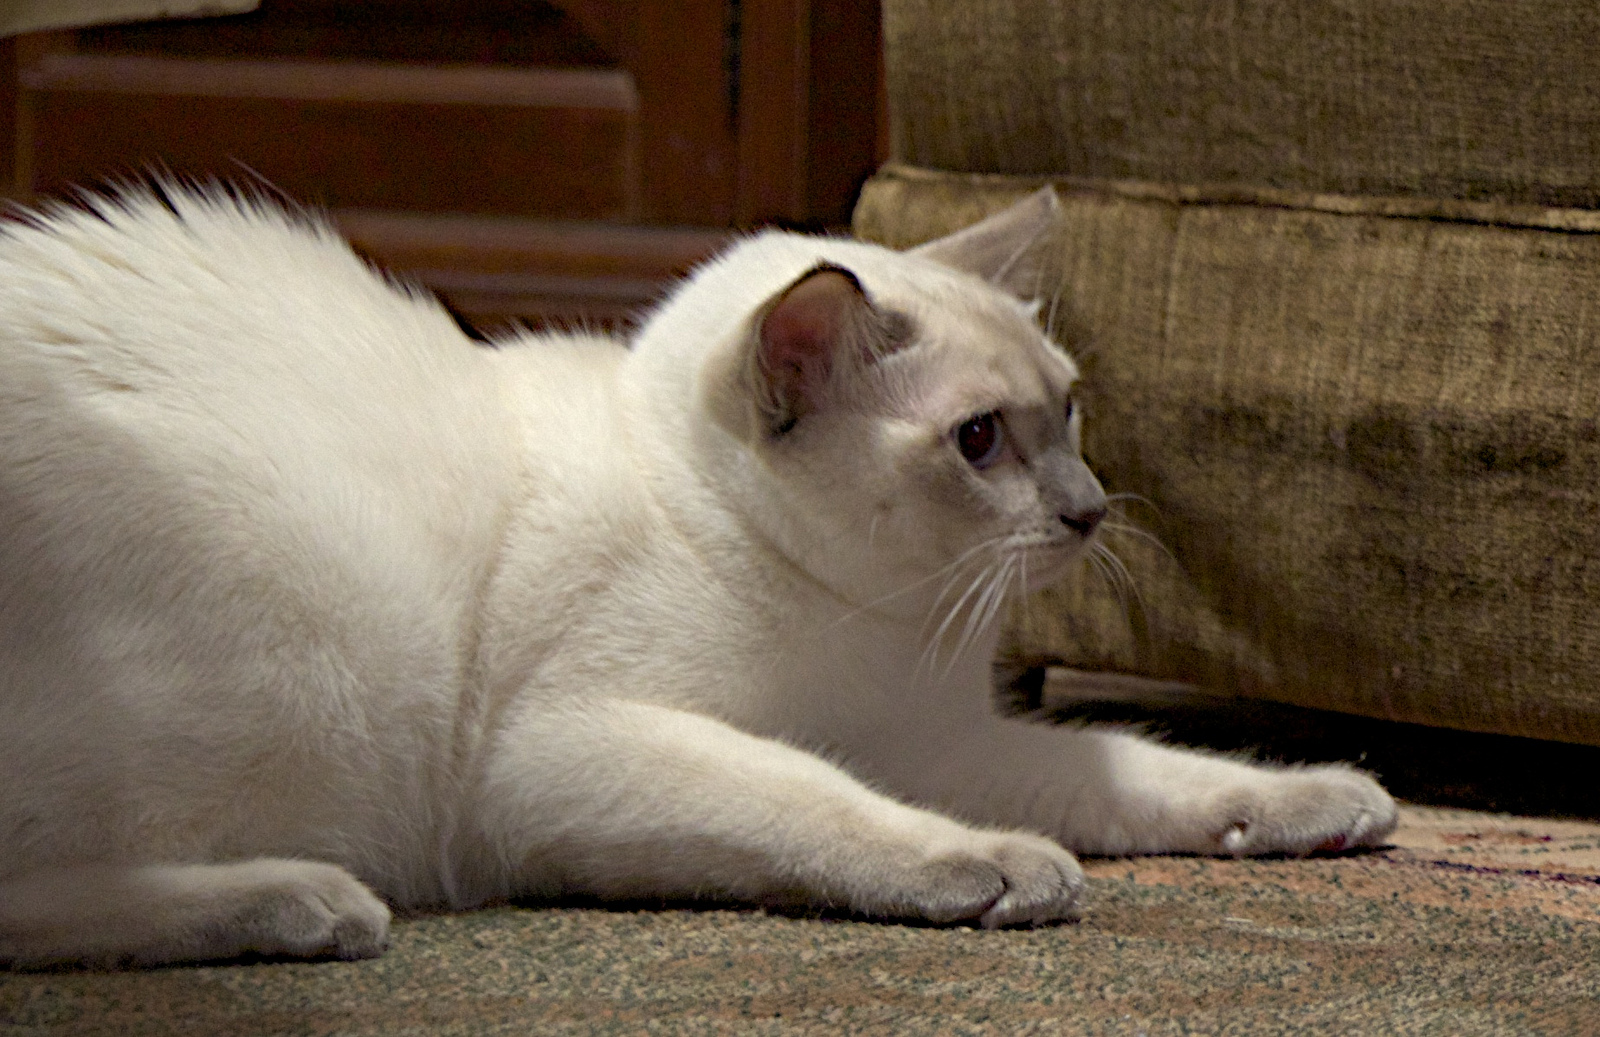 Courtesy of Joseph Dzikiewicz  Raised fur and an arched back are part of the posture of a frightened cat.